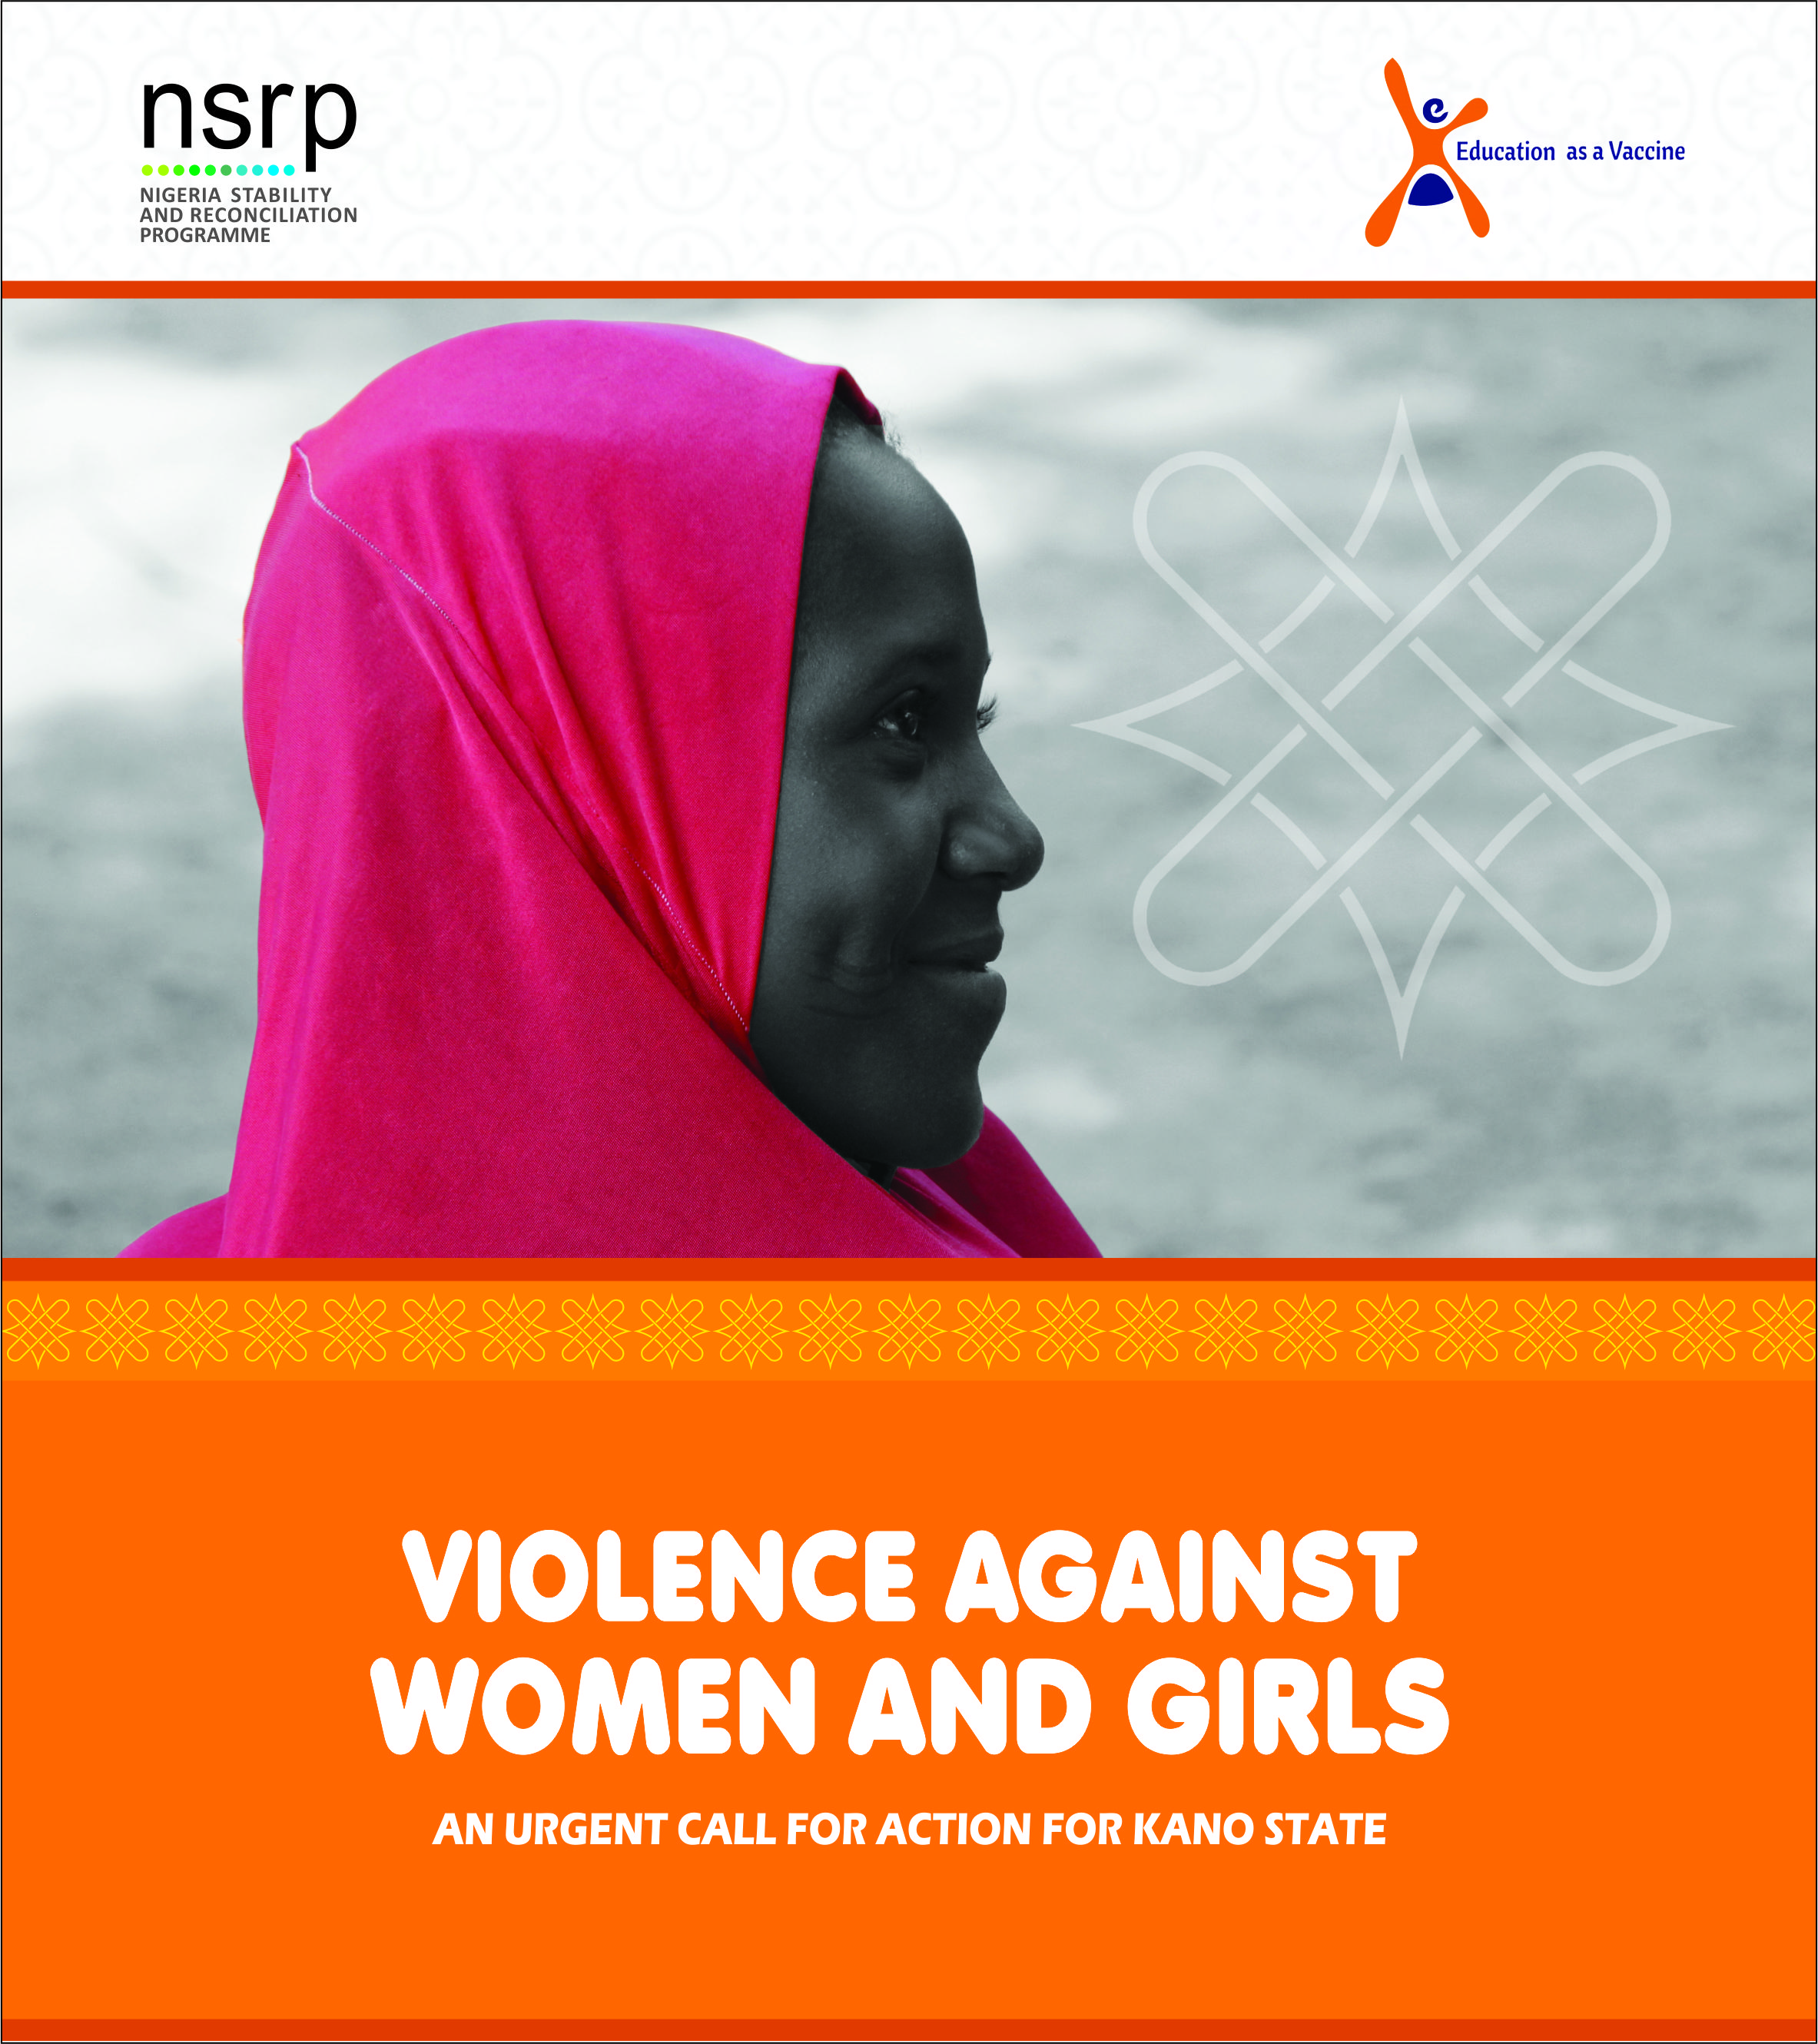 NSRP REPORT ON VIOLENCE AGAINST WOMEN AND GIRLS IN KANO STATE